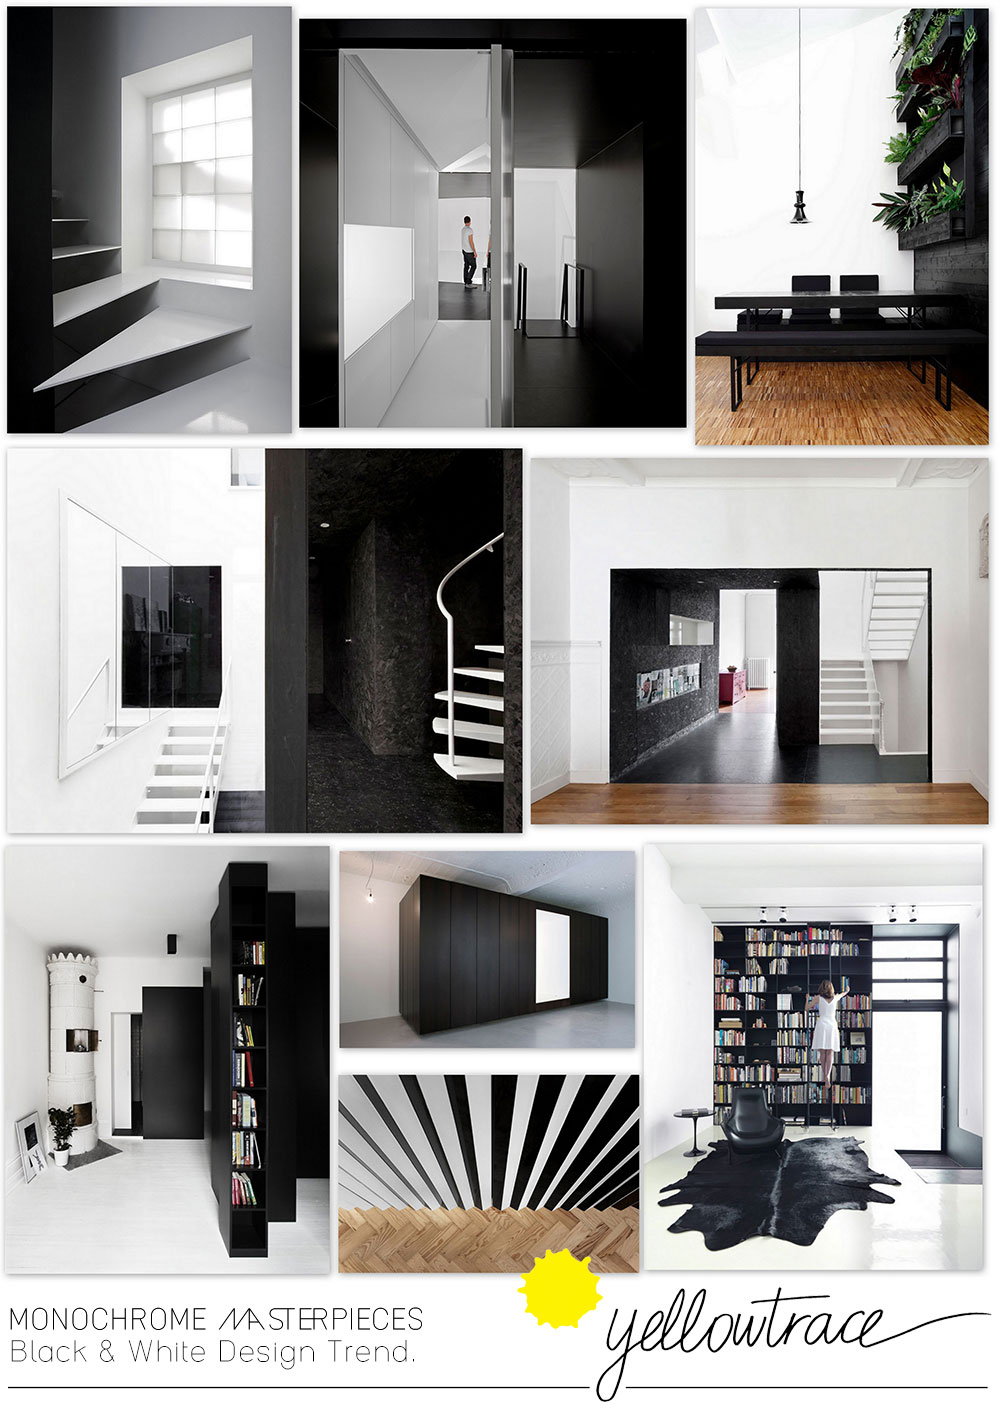 Monochrome Masterpieces | Black and White Design Trend Curated by Yellowtrace.